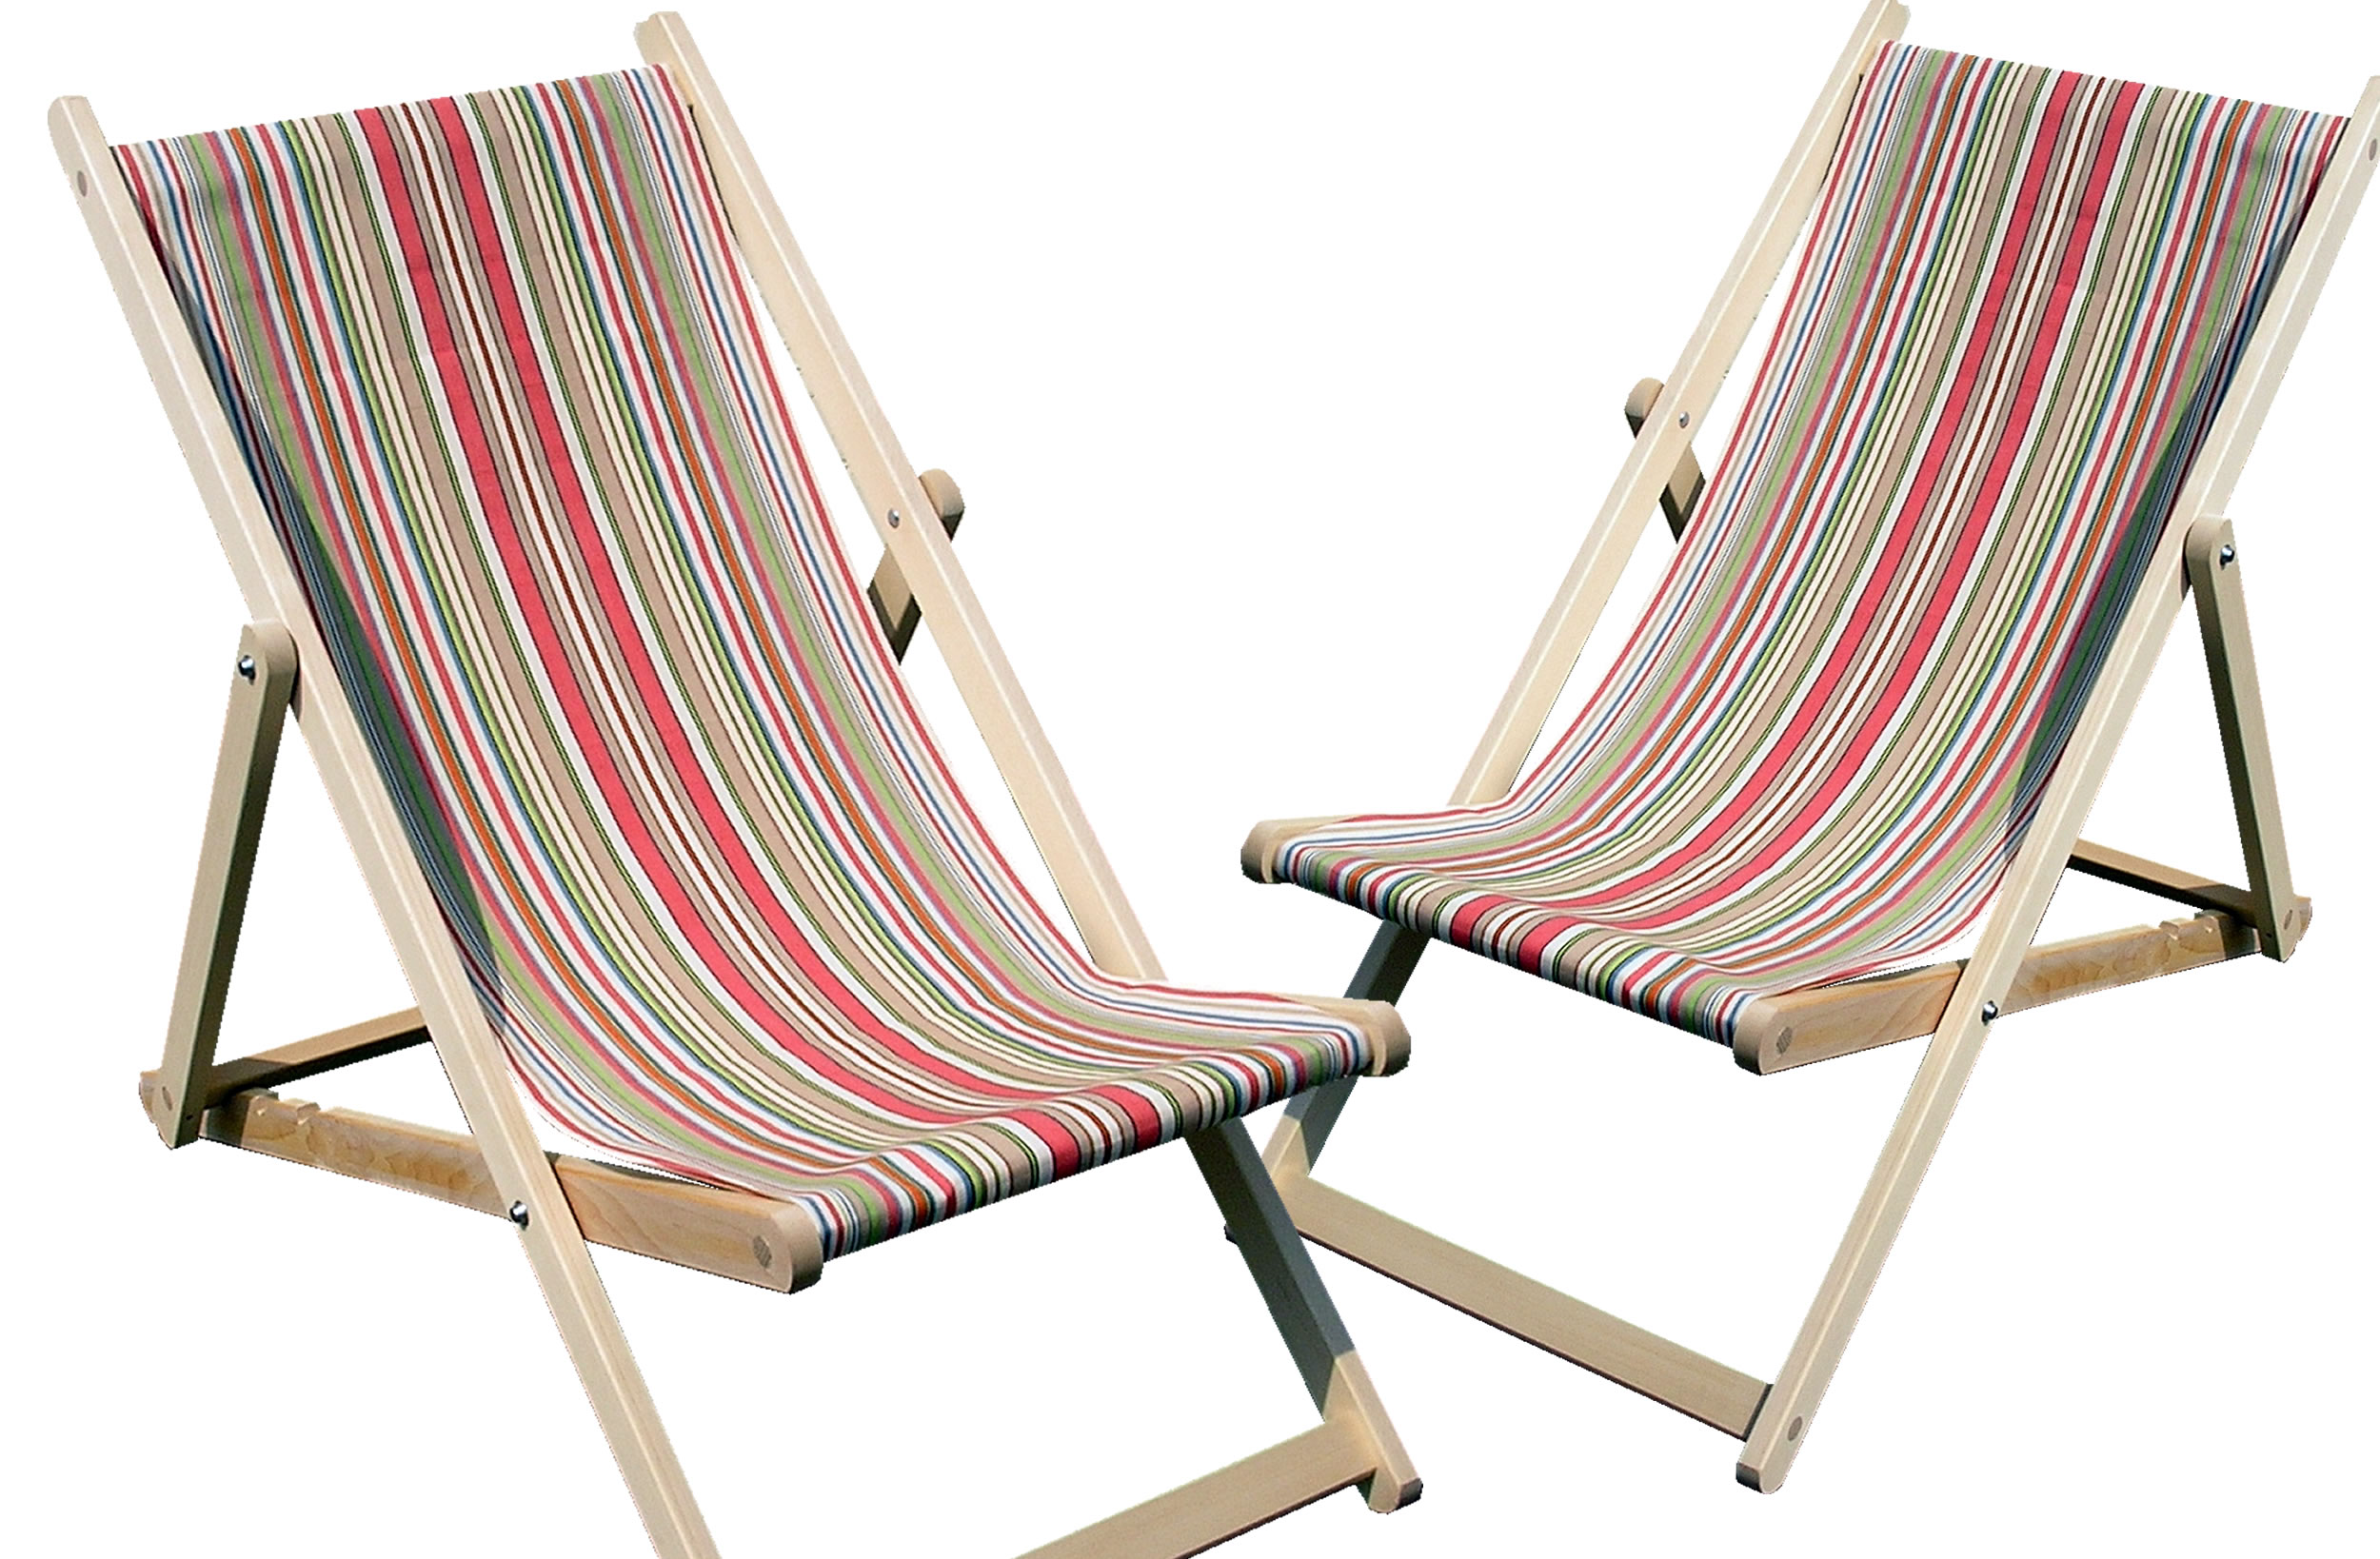 Coral Stripe Deckchairs | Wooden Folding Deck Chairs Vintage Slamball  Stripes